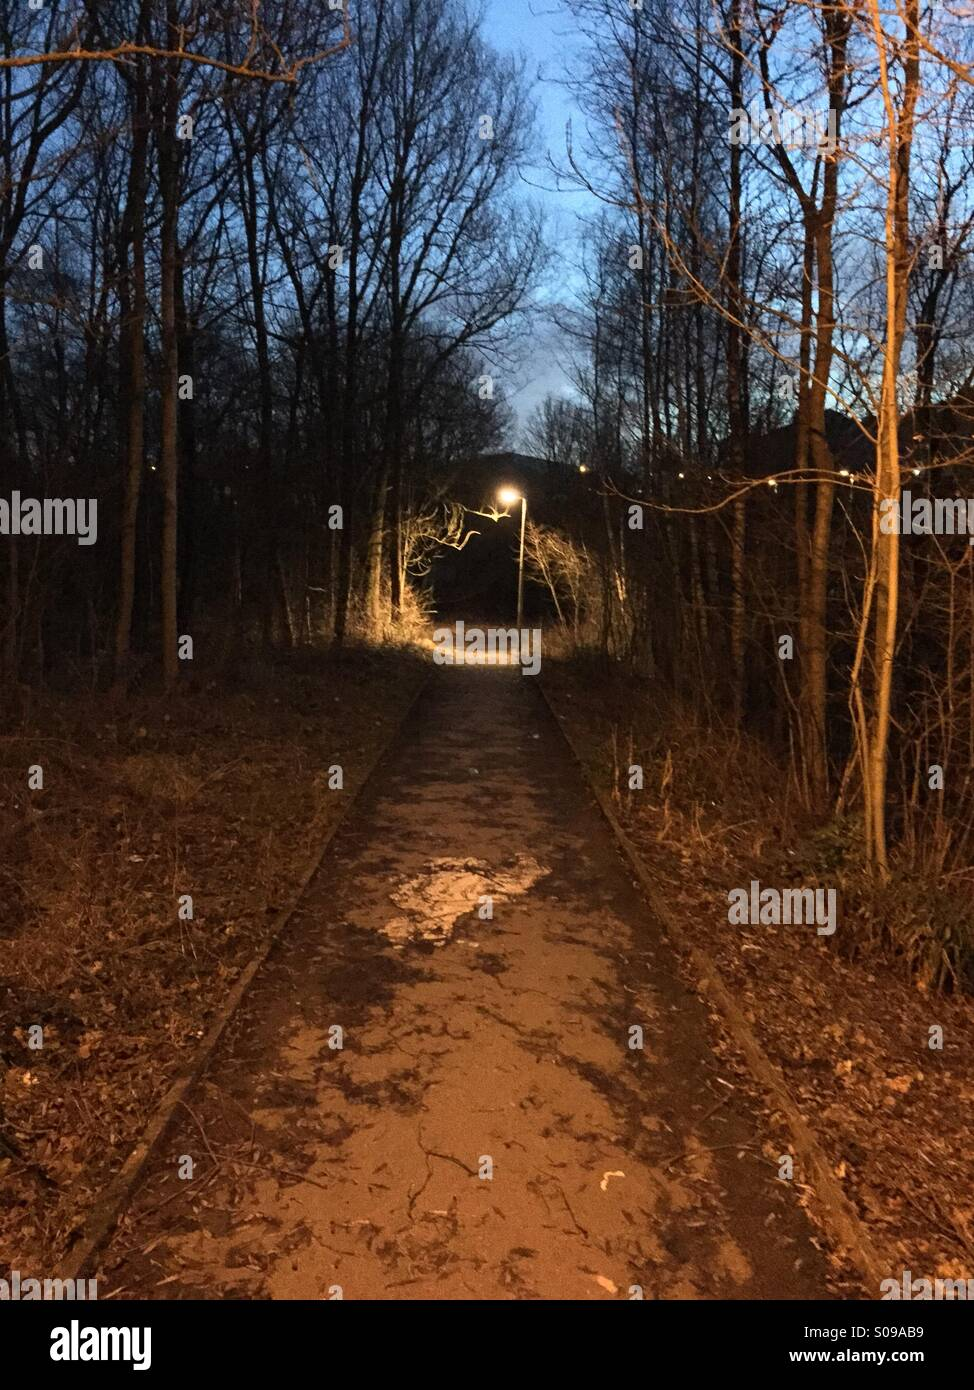 Lowlight photography of a woodland path - Stock Image